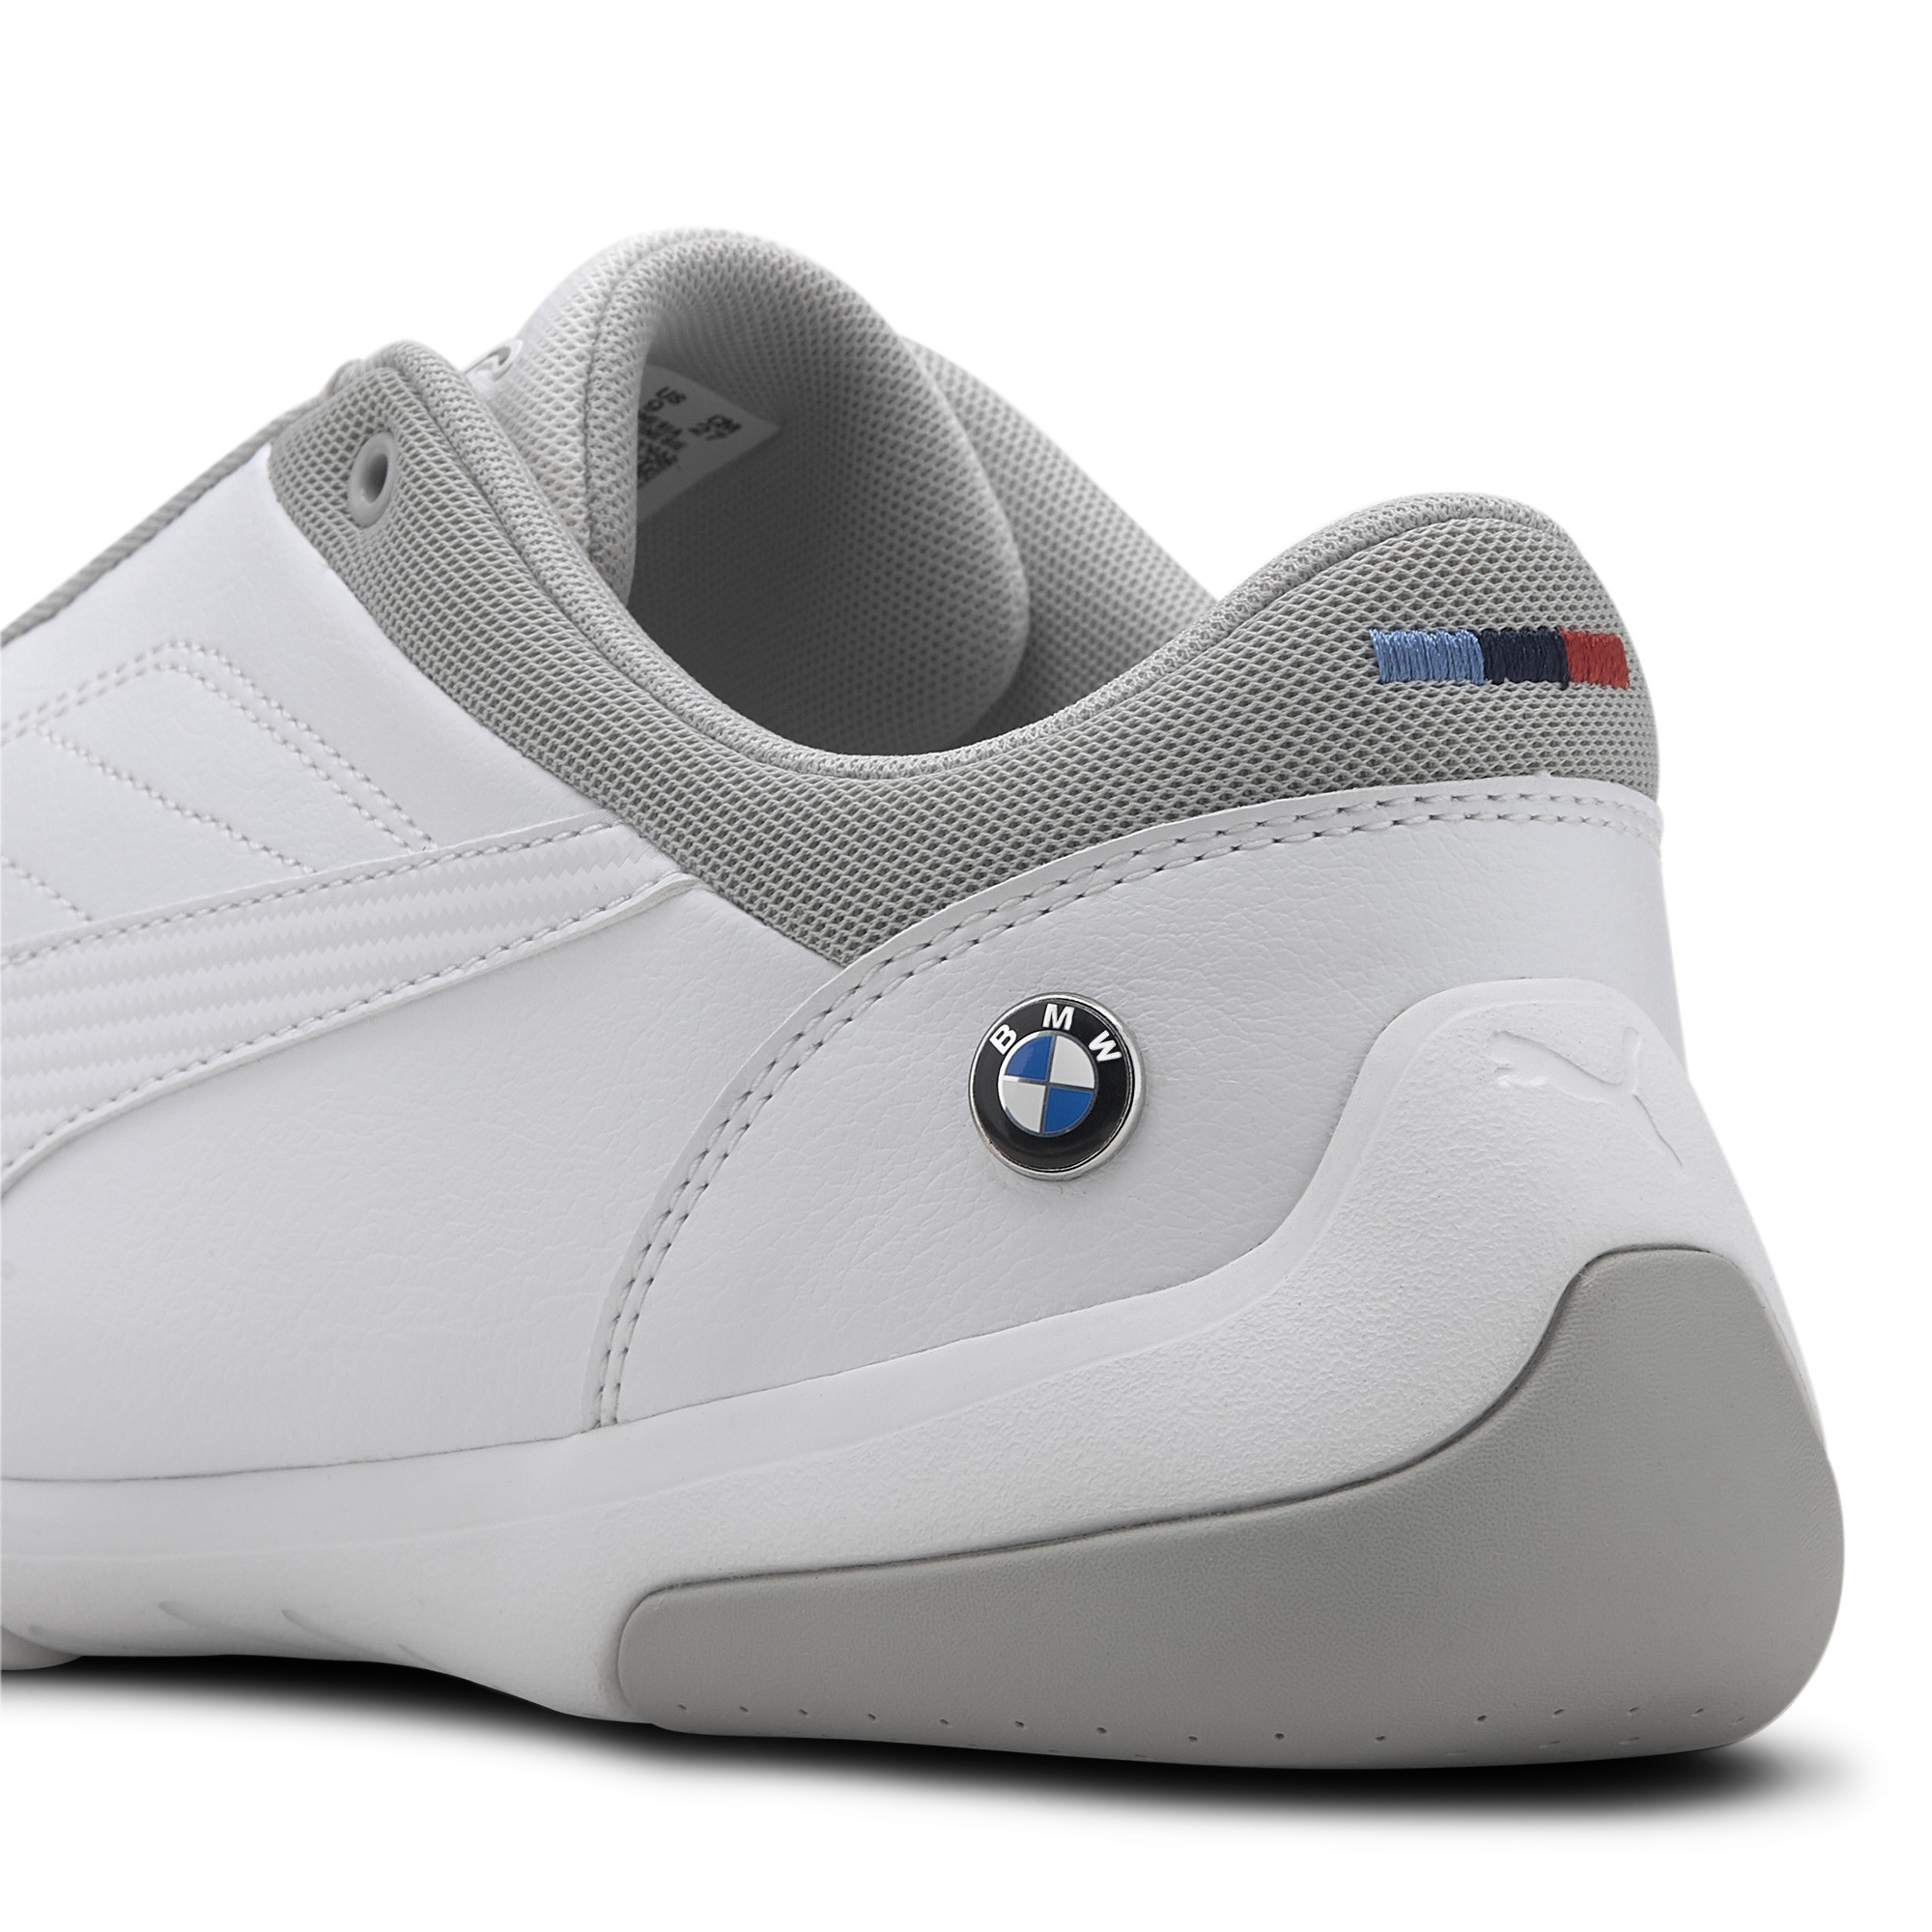 PUMA-Men-039-s-BMW-M-Motorsport-Kart-Cat-III-Motorsport-Shoes thumbnail 17